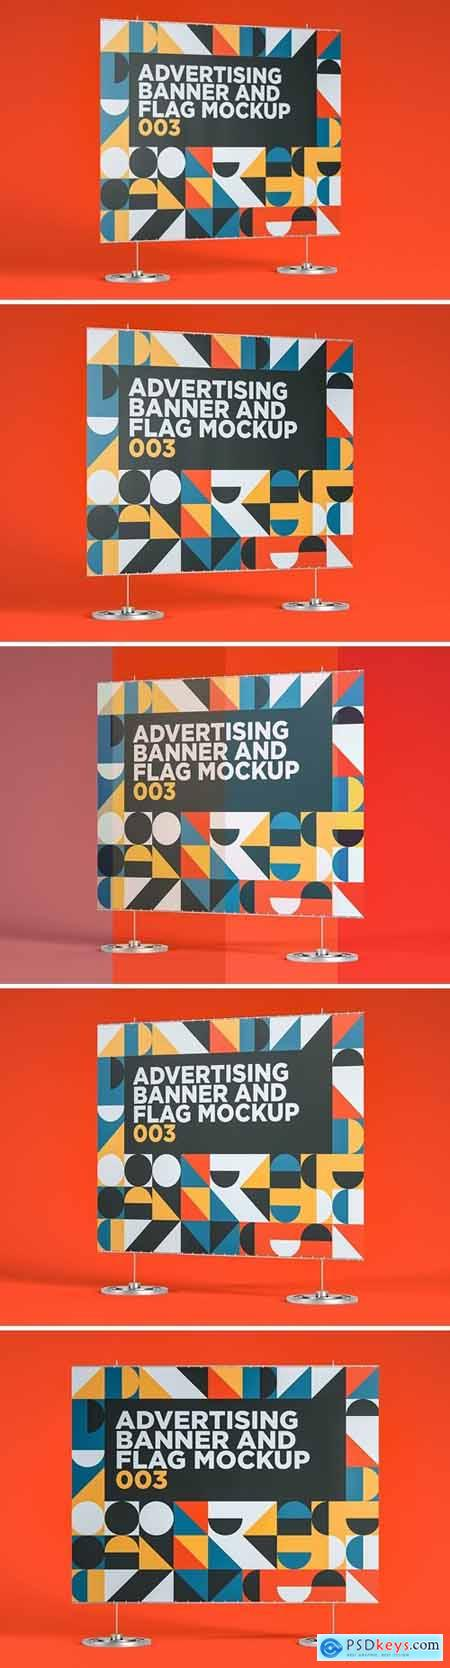 Advertising Banner And Flag Mockup 003